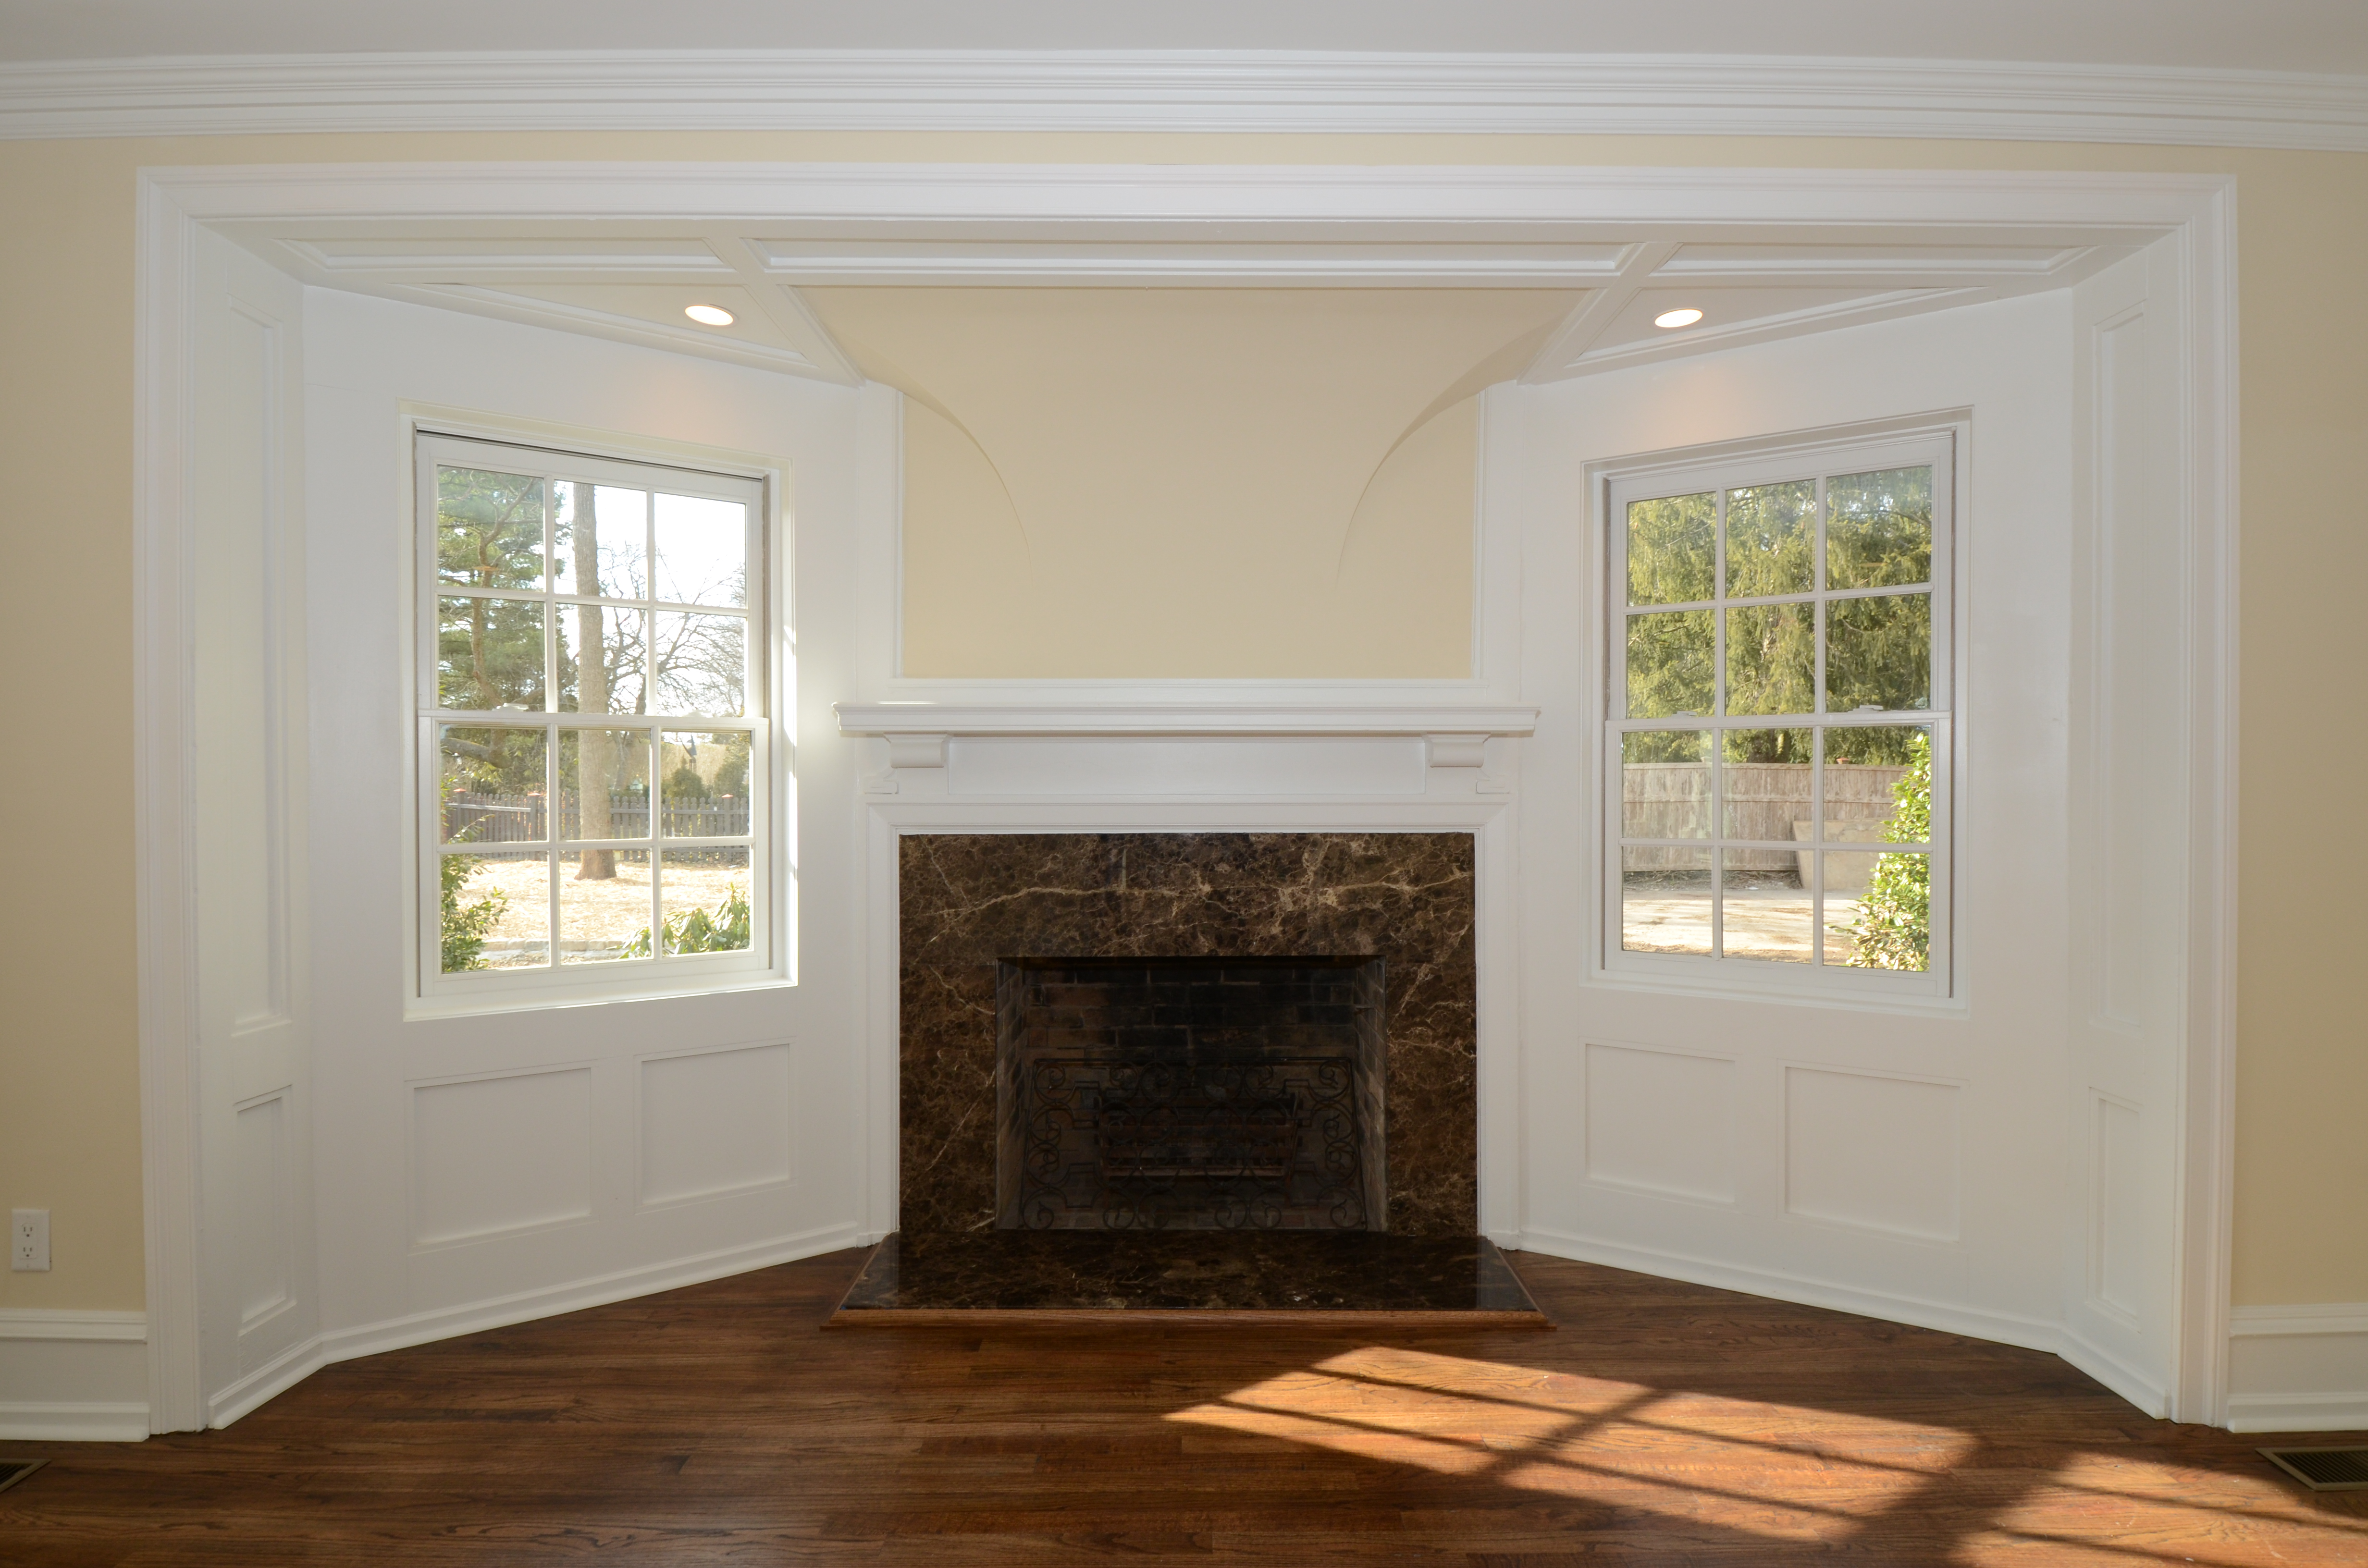 Fireplace amp windows american made renovations